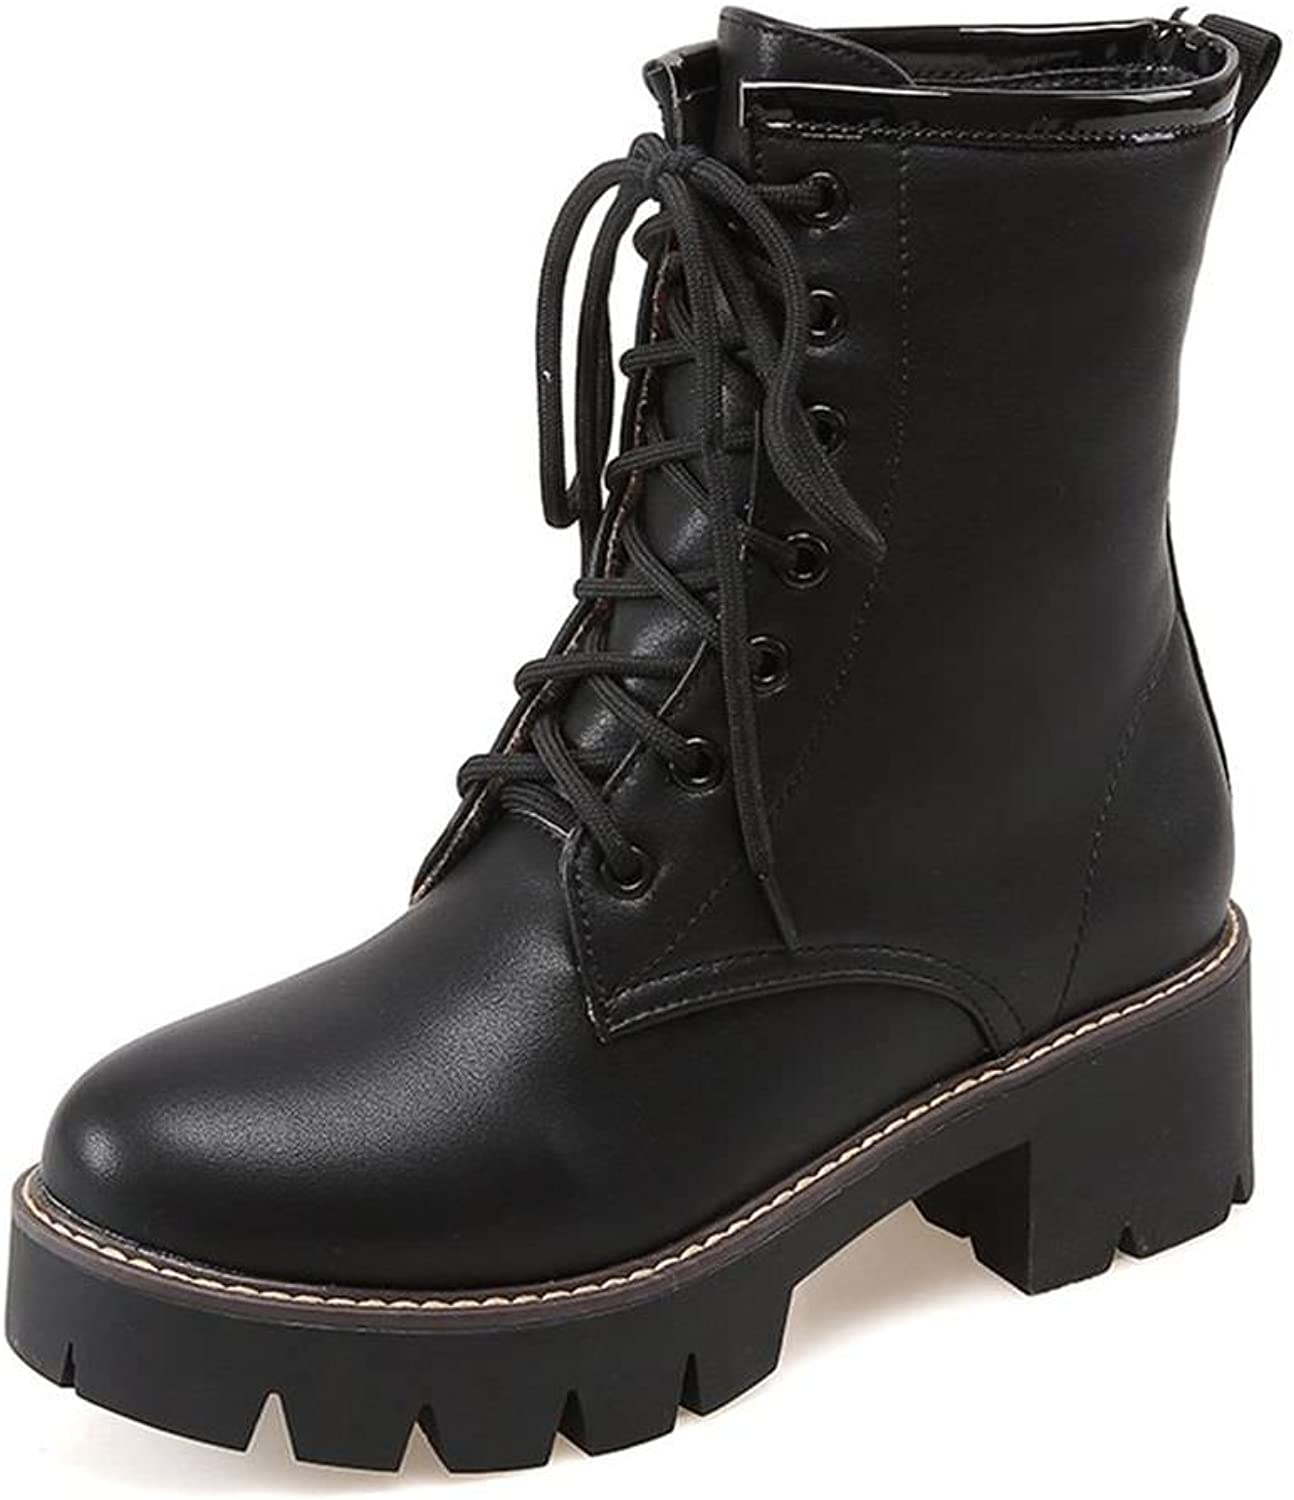 DecoStain Women's Embossed Leather Lace-Up Round Toe Mid Heel Ankle Combat Boots